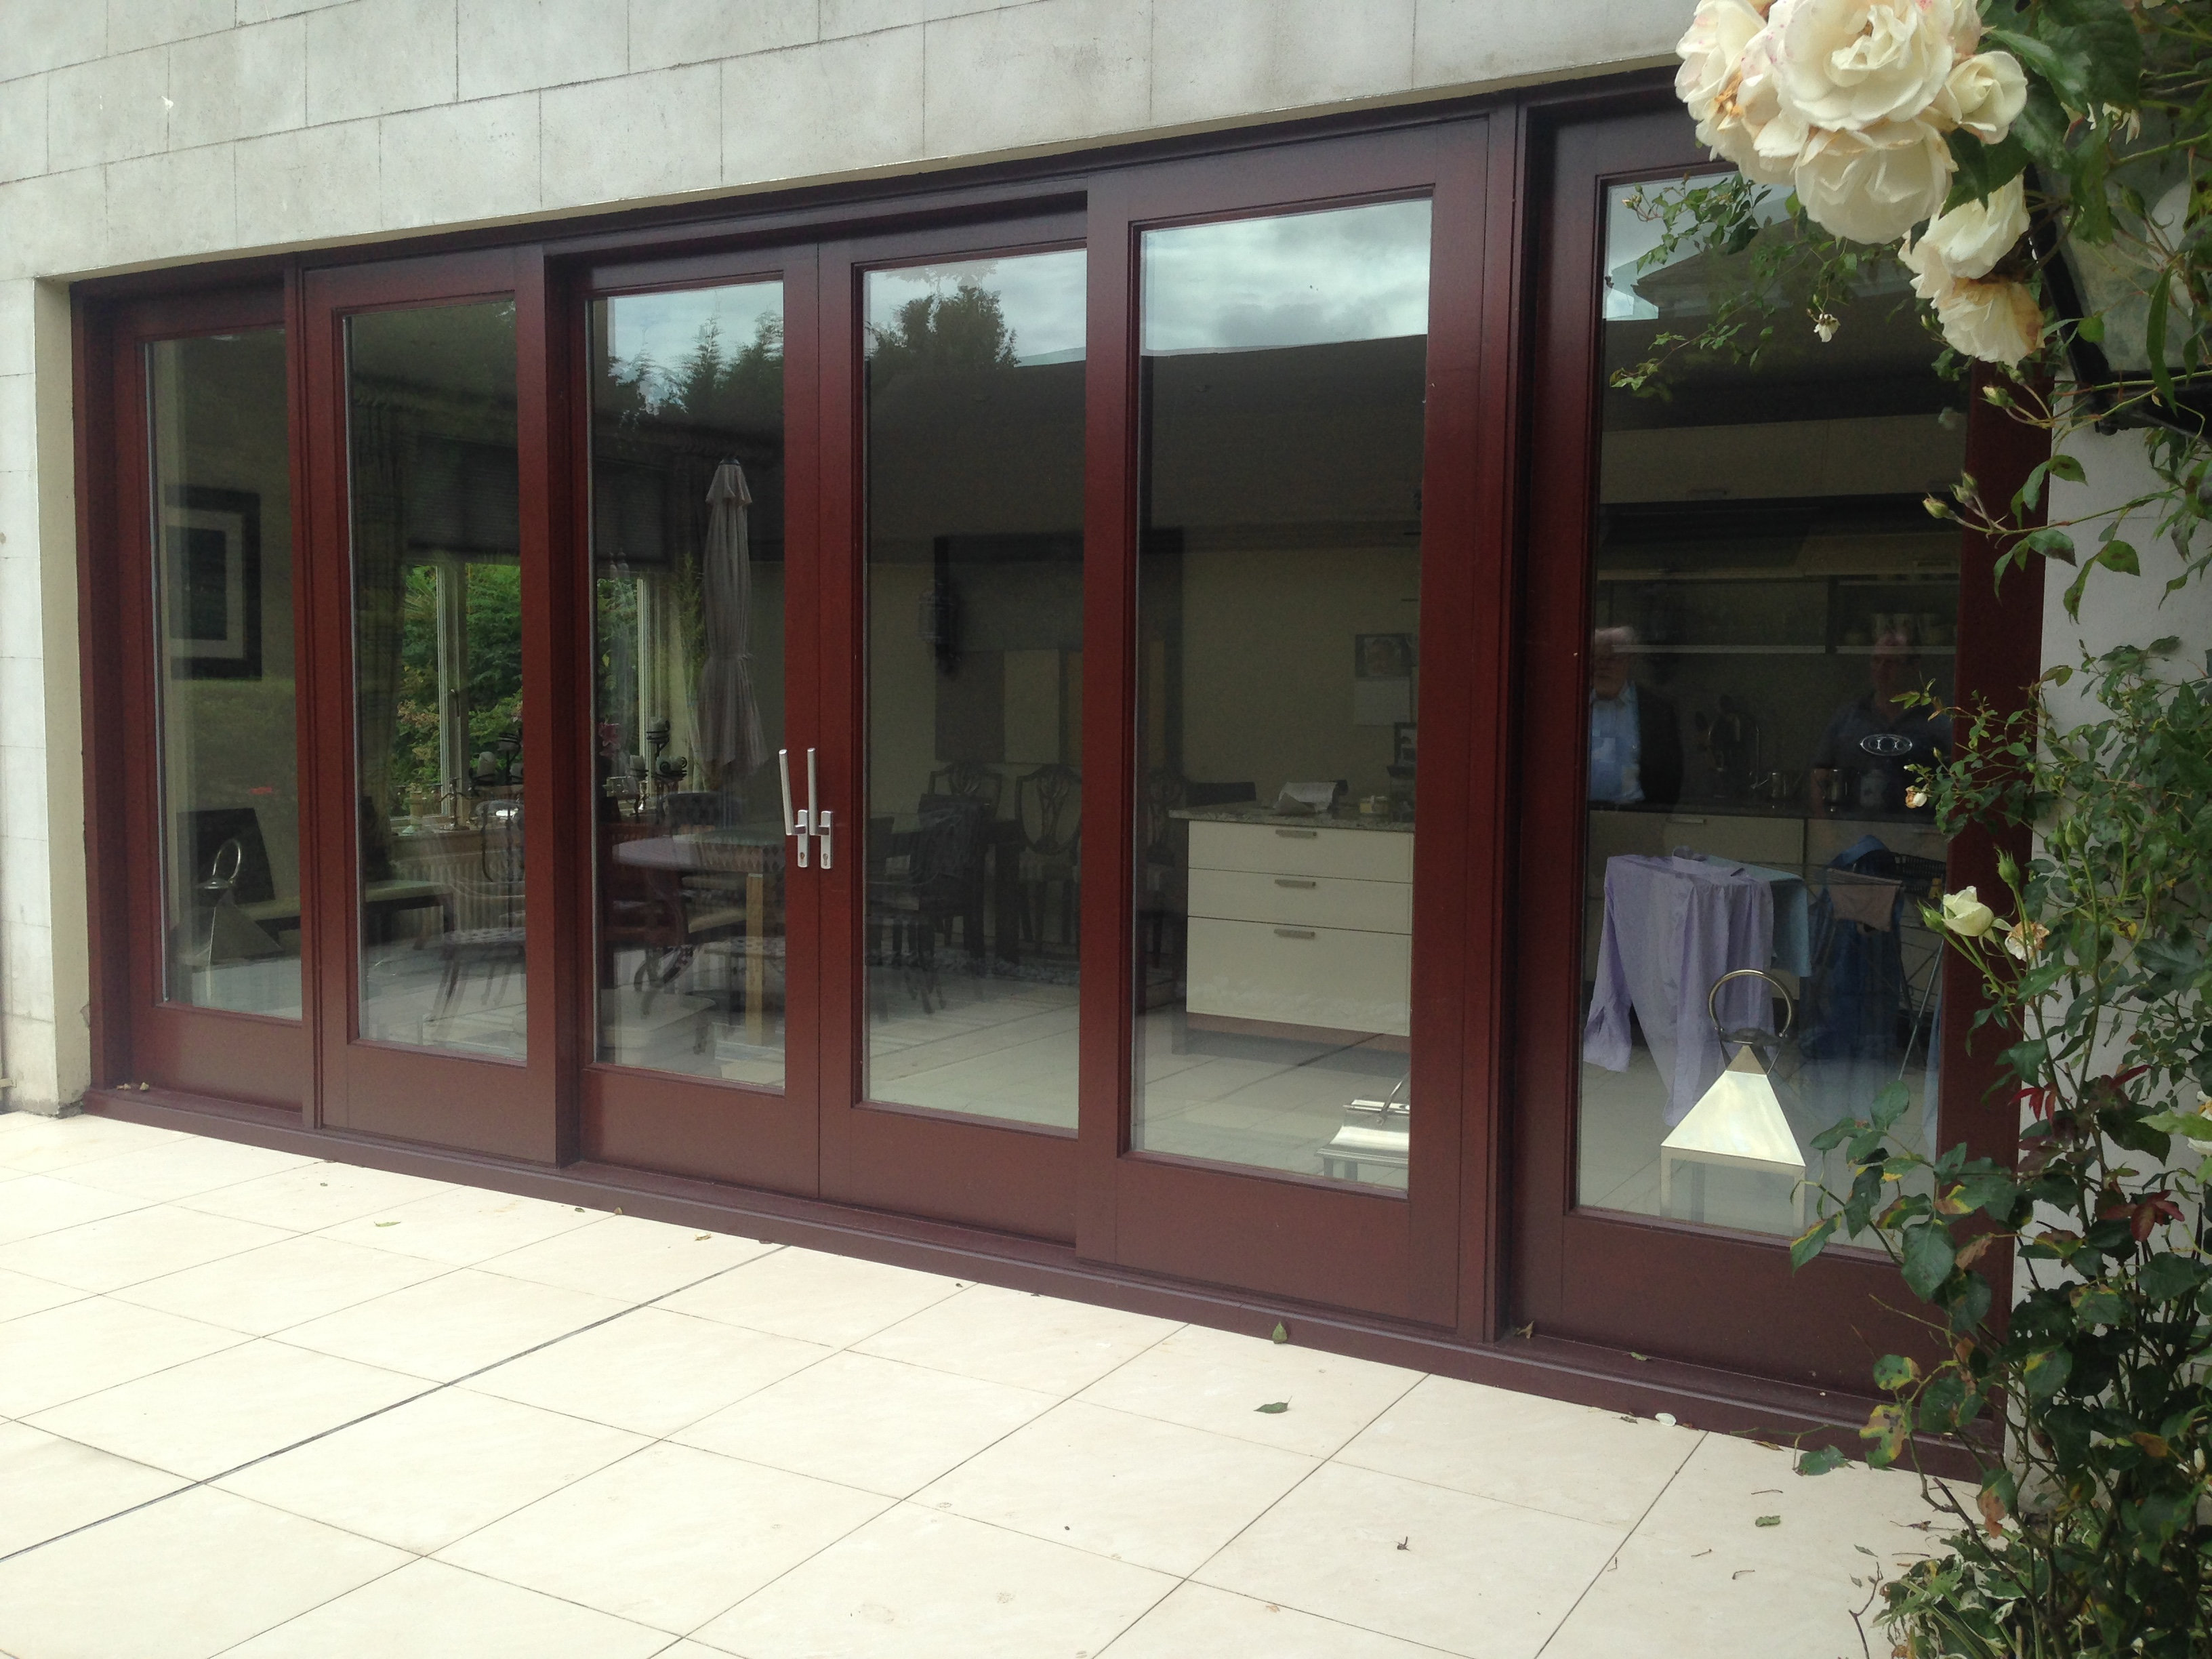 train doors gb automatic rugged products besam en station door assa systems our sliding aaes frame slide abloy entrance